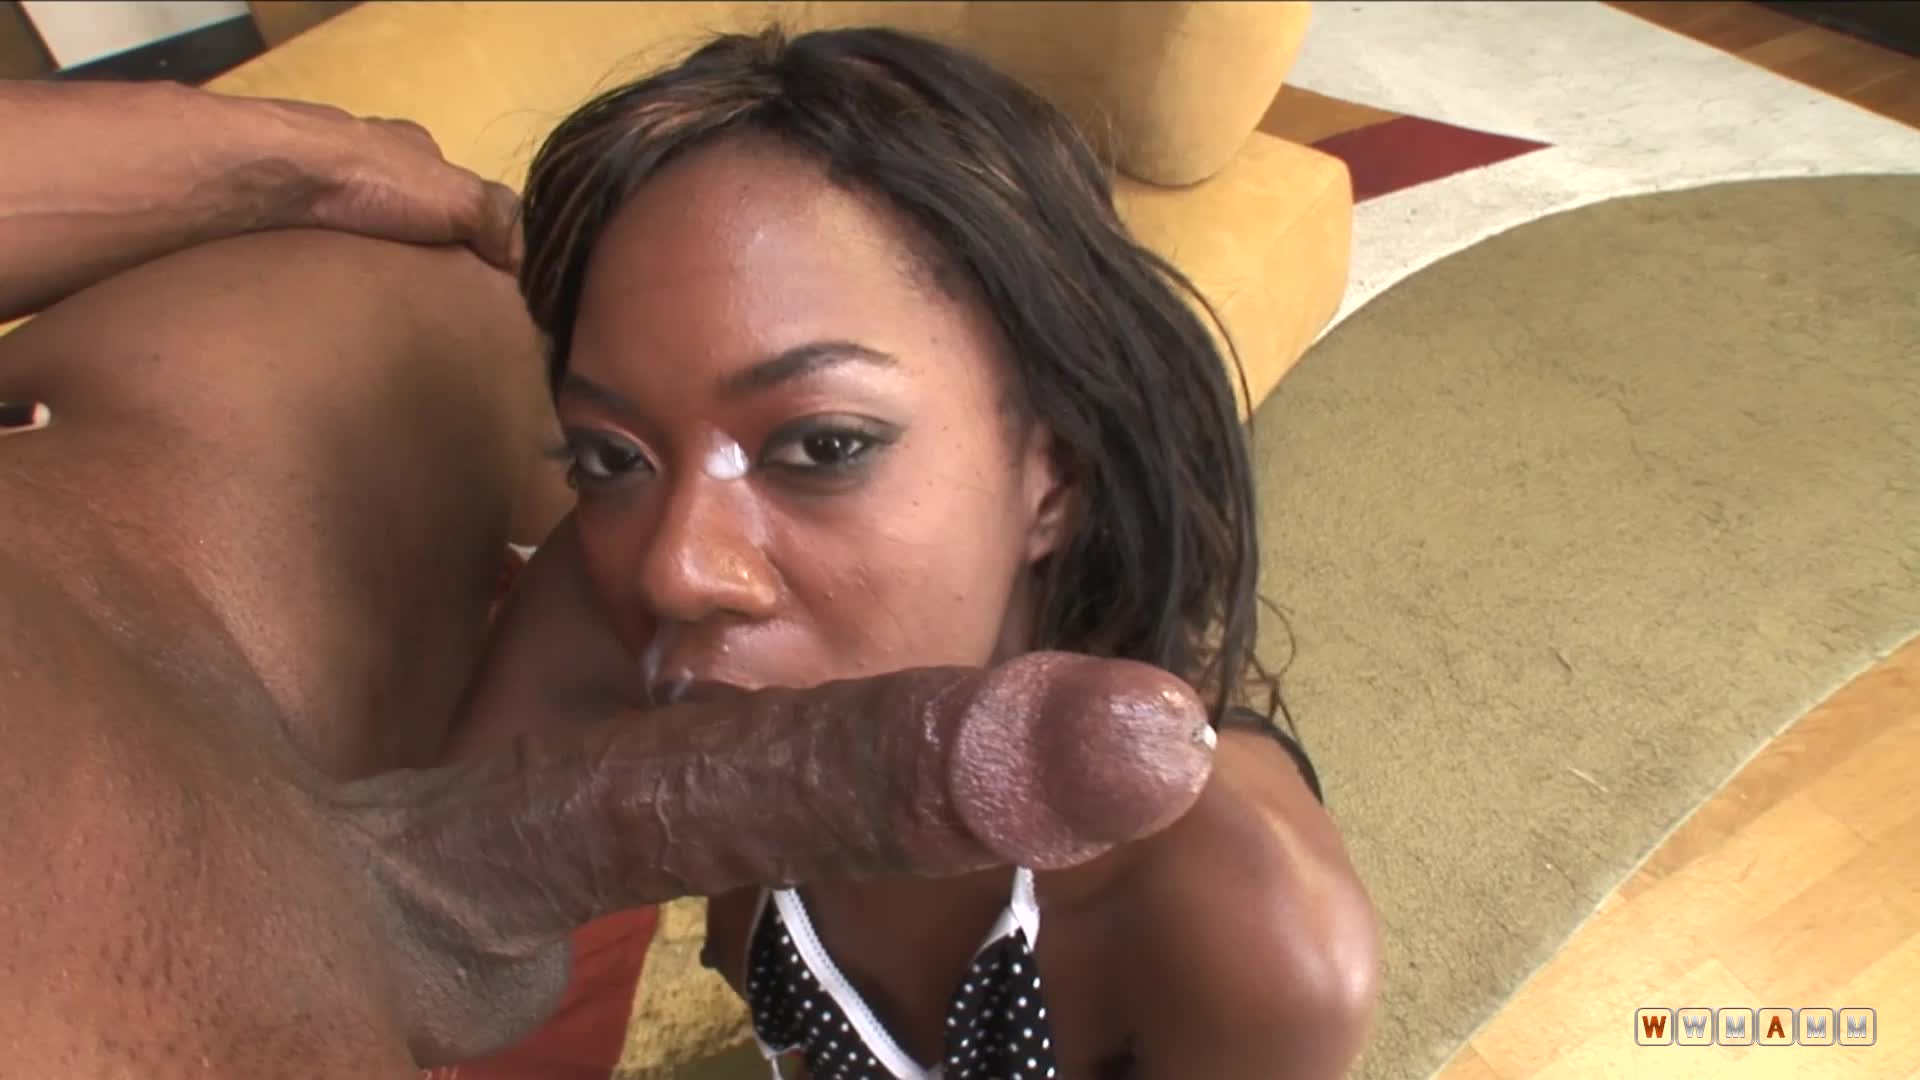 Whores Like Aysha Usually End With A Cum On Their Slutty Face